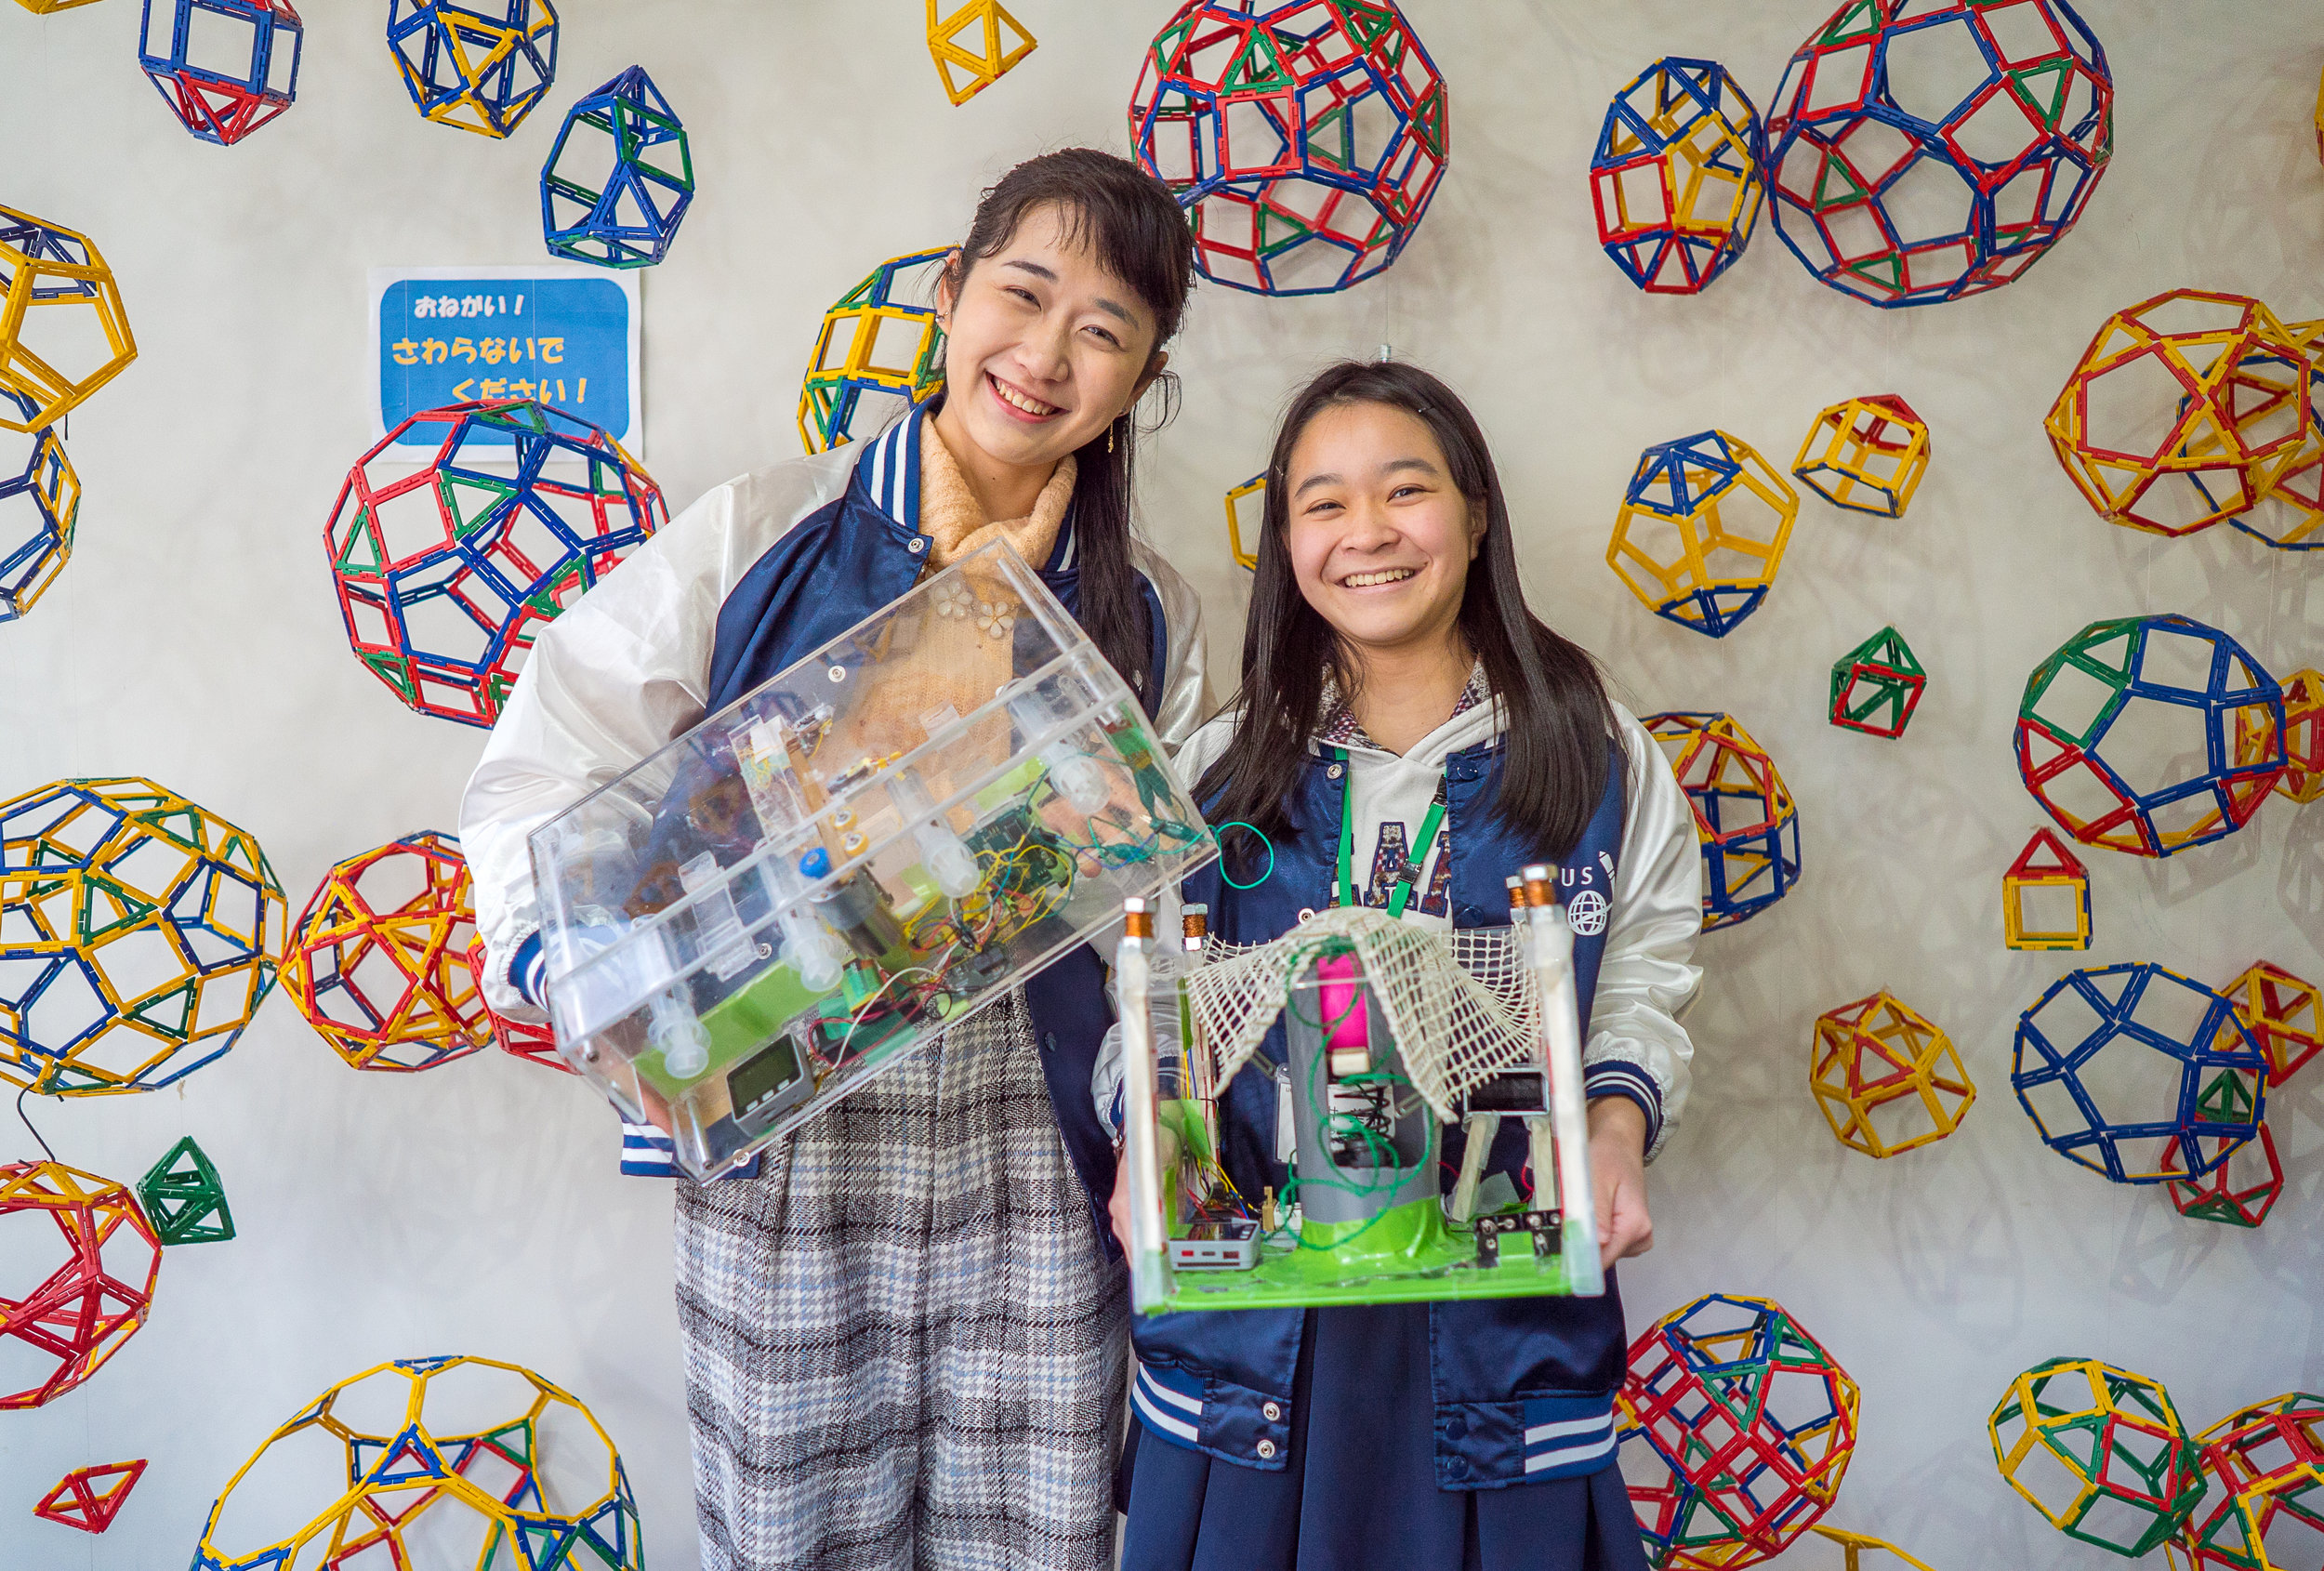 Emiko (left) and Miki (right) pose with the devices they built as part of the Space Education programme at the Tokyo University of Science. (Courtesy of Amarachi Nwosu / Malala Fund)